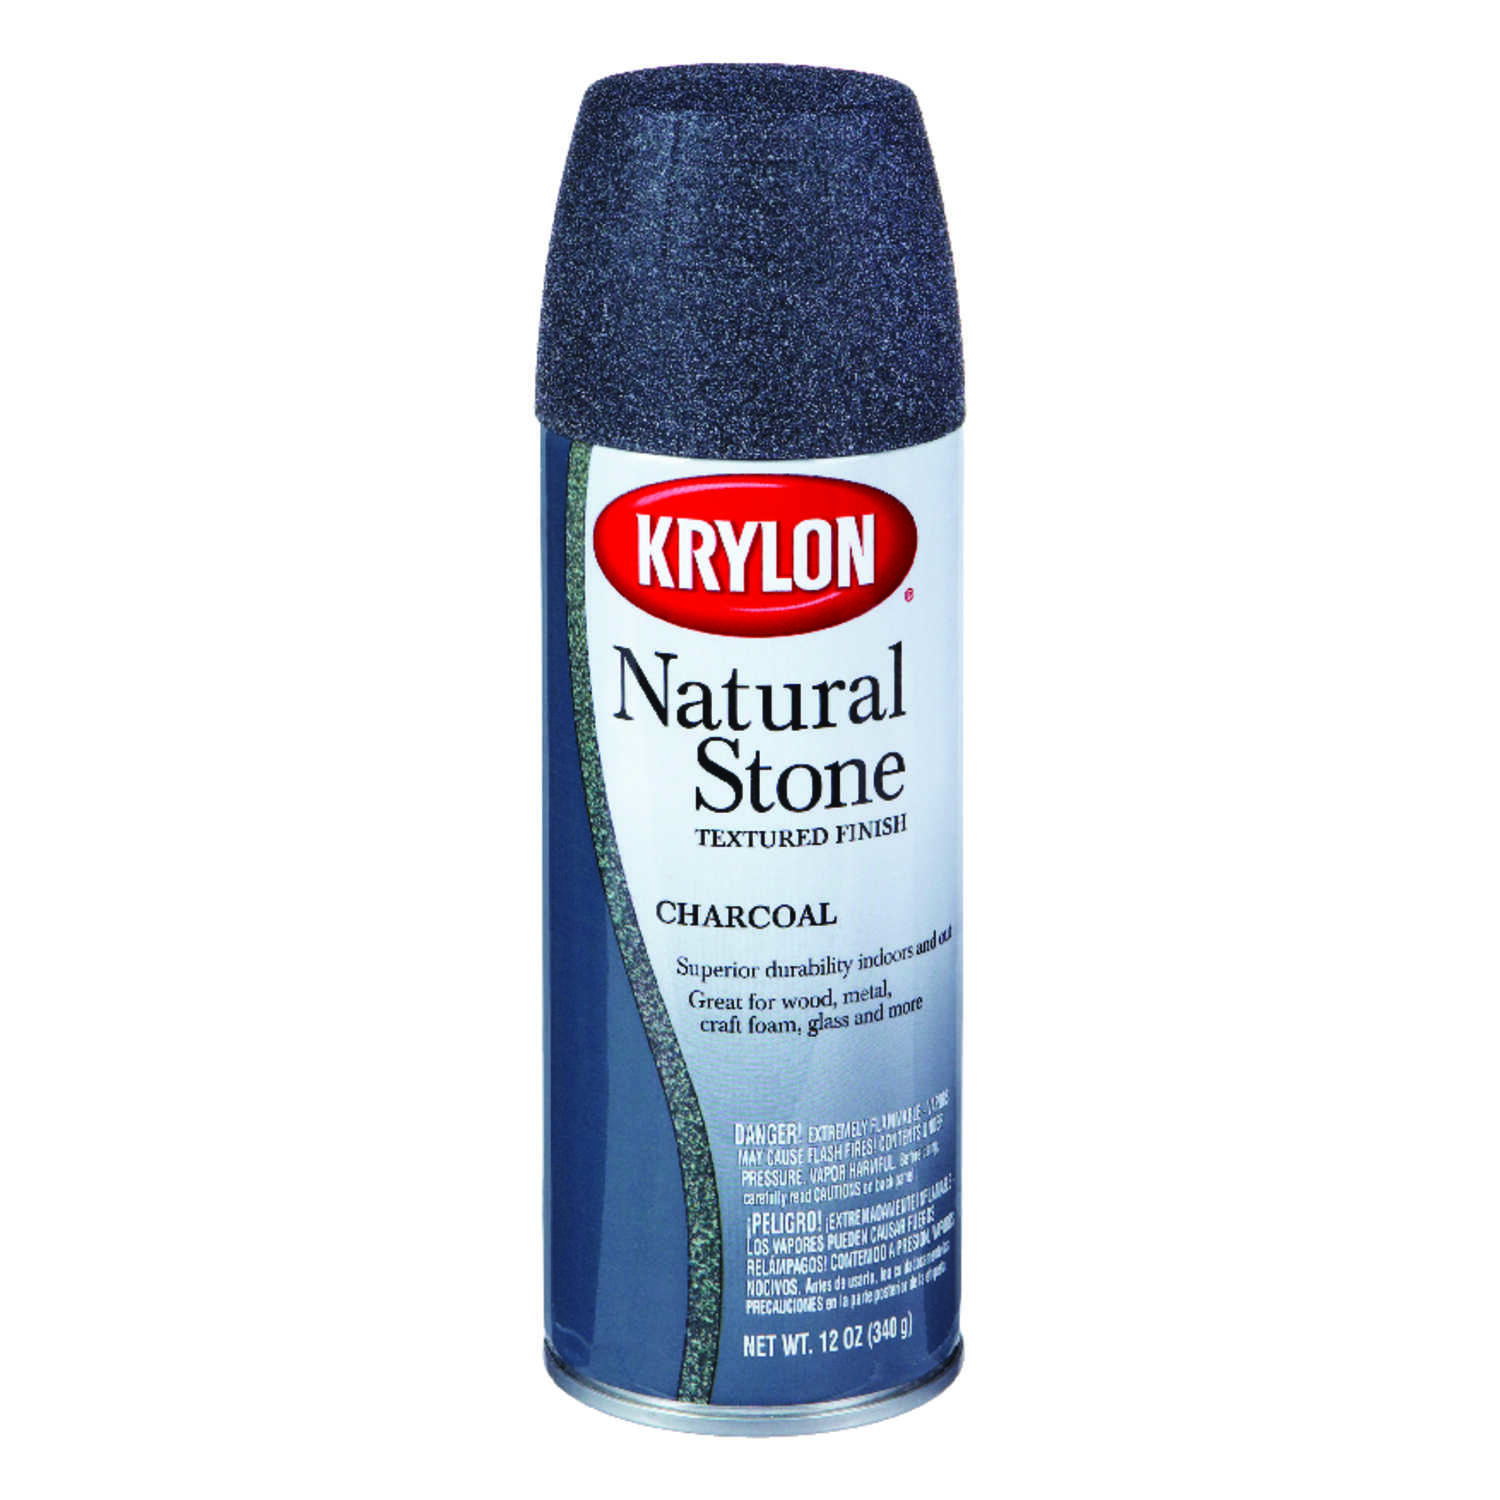 Krylon  Textured  Charcoal  Natural Stone Spray Paint  12 oz.